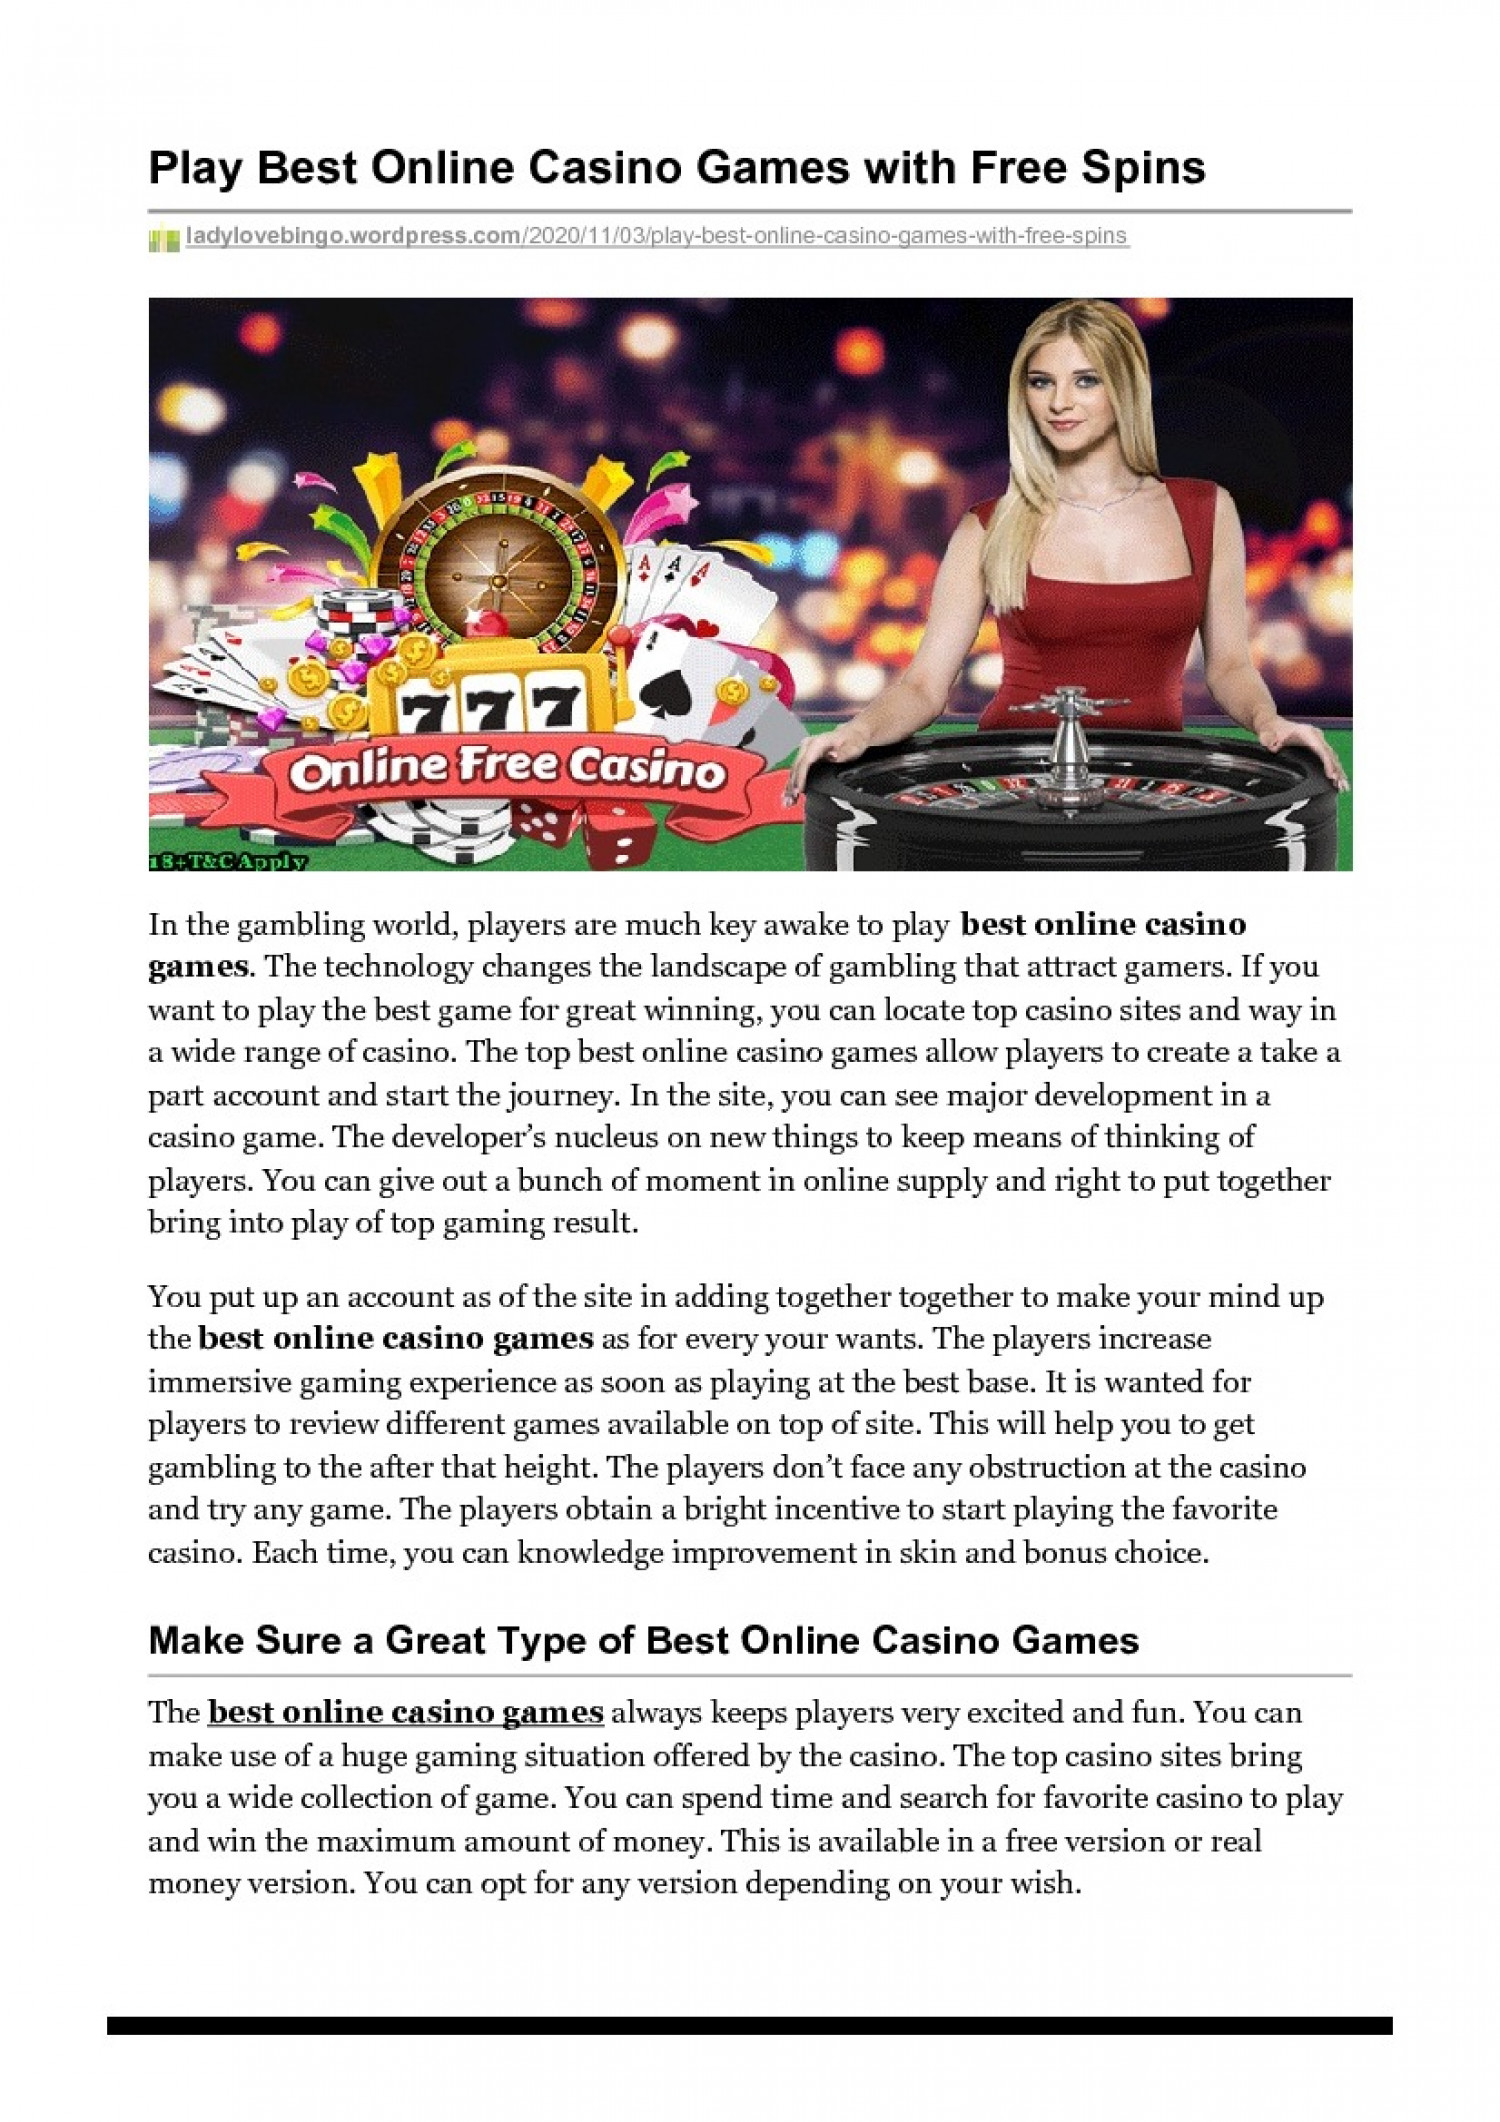 Play Best Online Casino Games with Free Spins Infographic